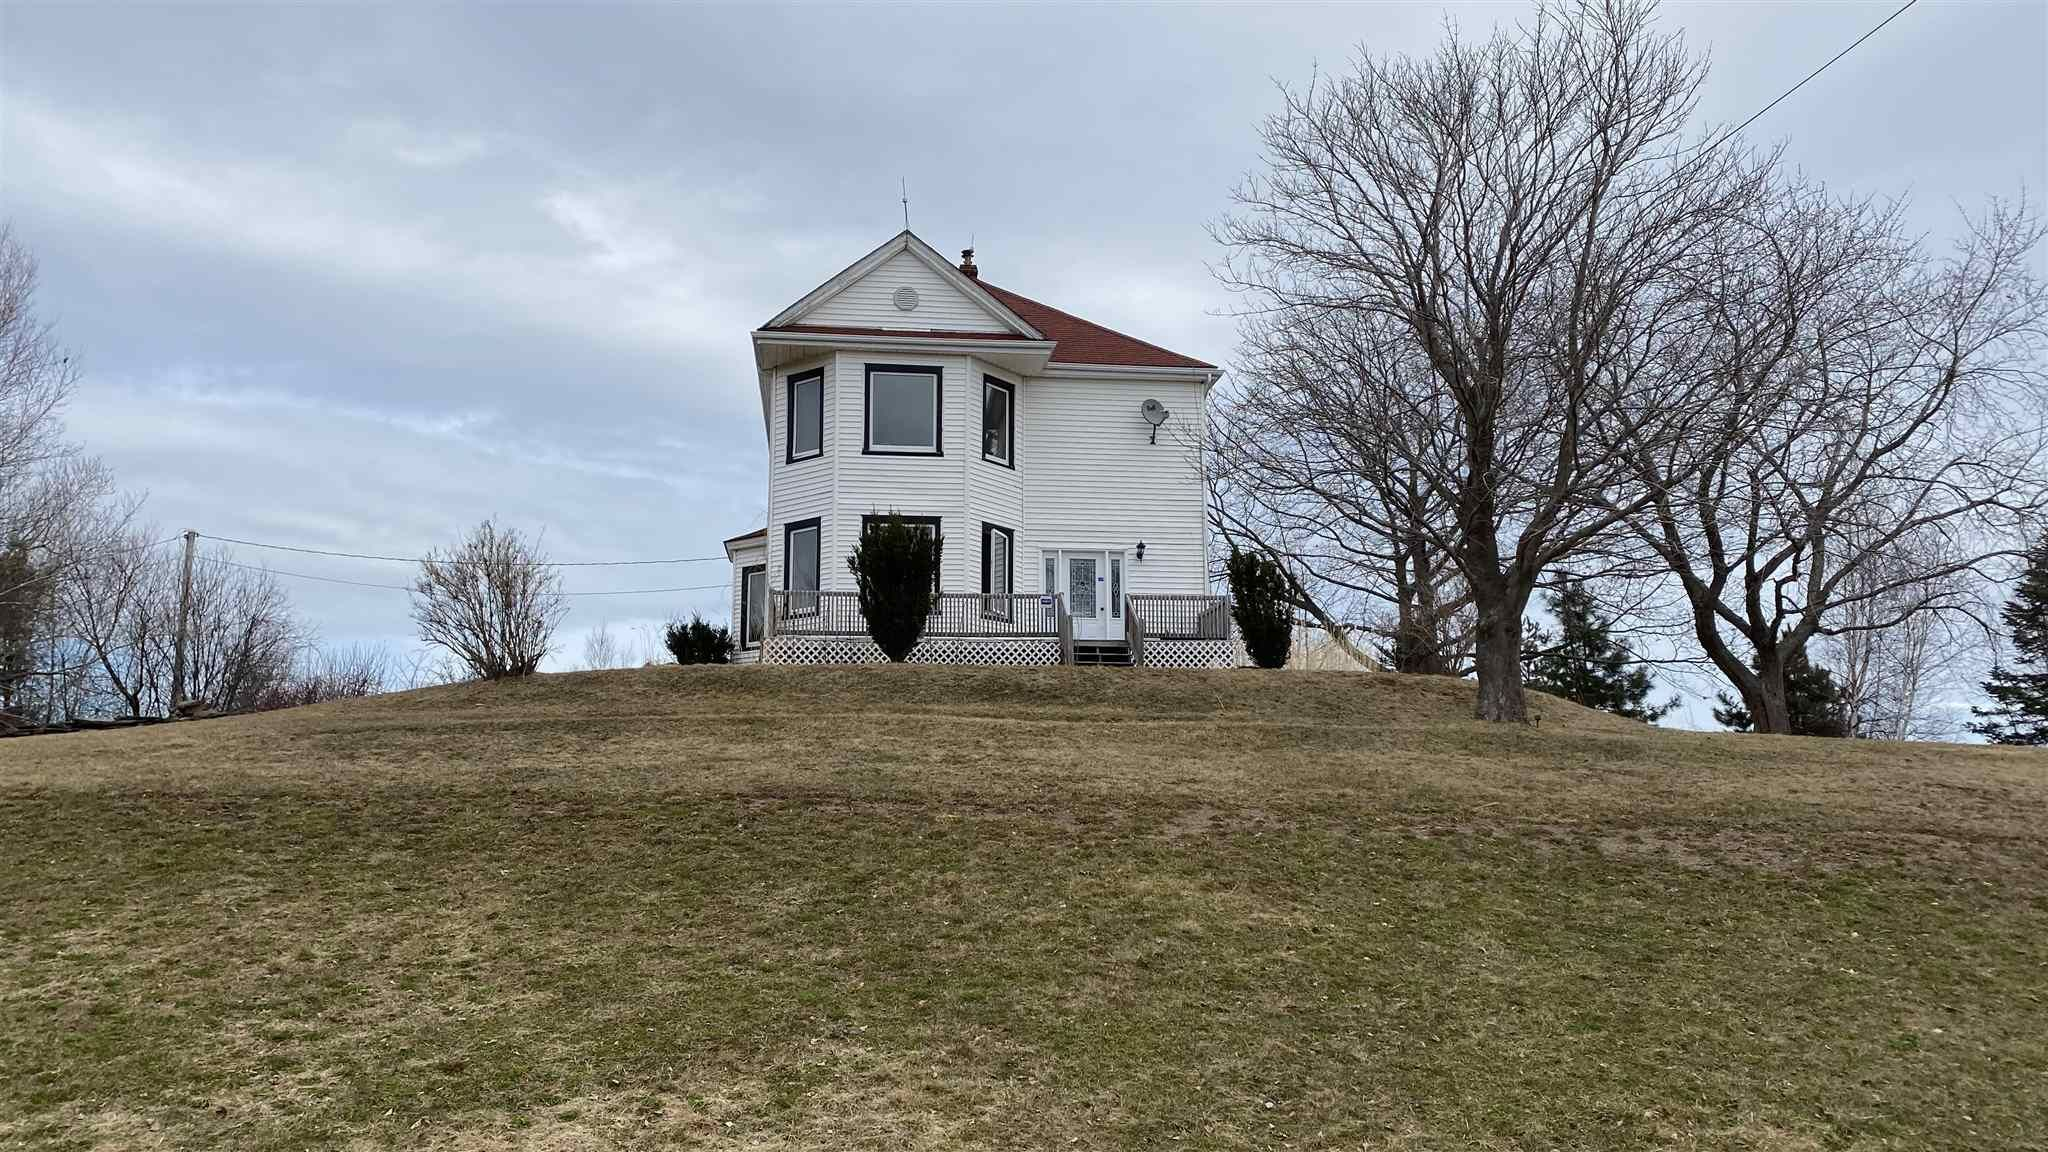 Main Photo: 4932 Pictou Landing Road in Pictou Landing: 108-Rural Pictou County Residential for sale (Northern Region)  : MLS®# 202106307